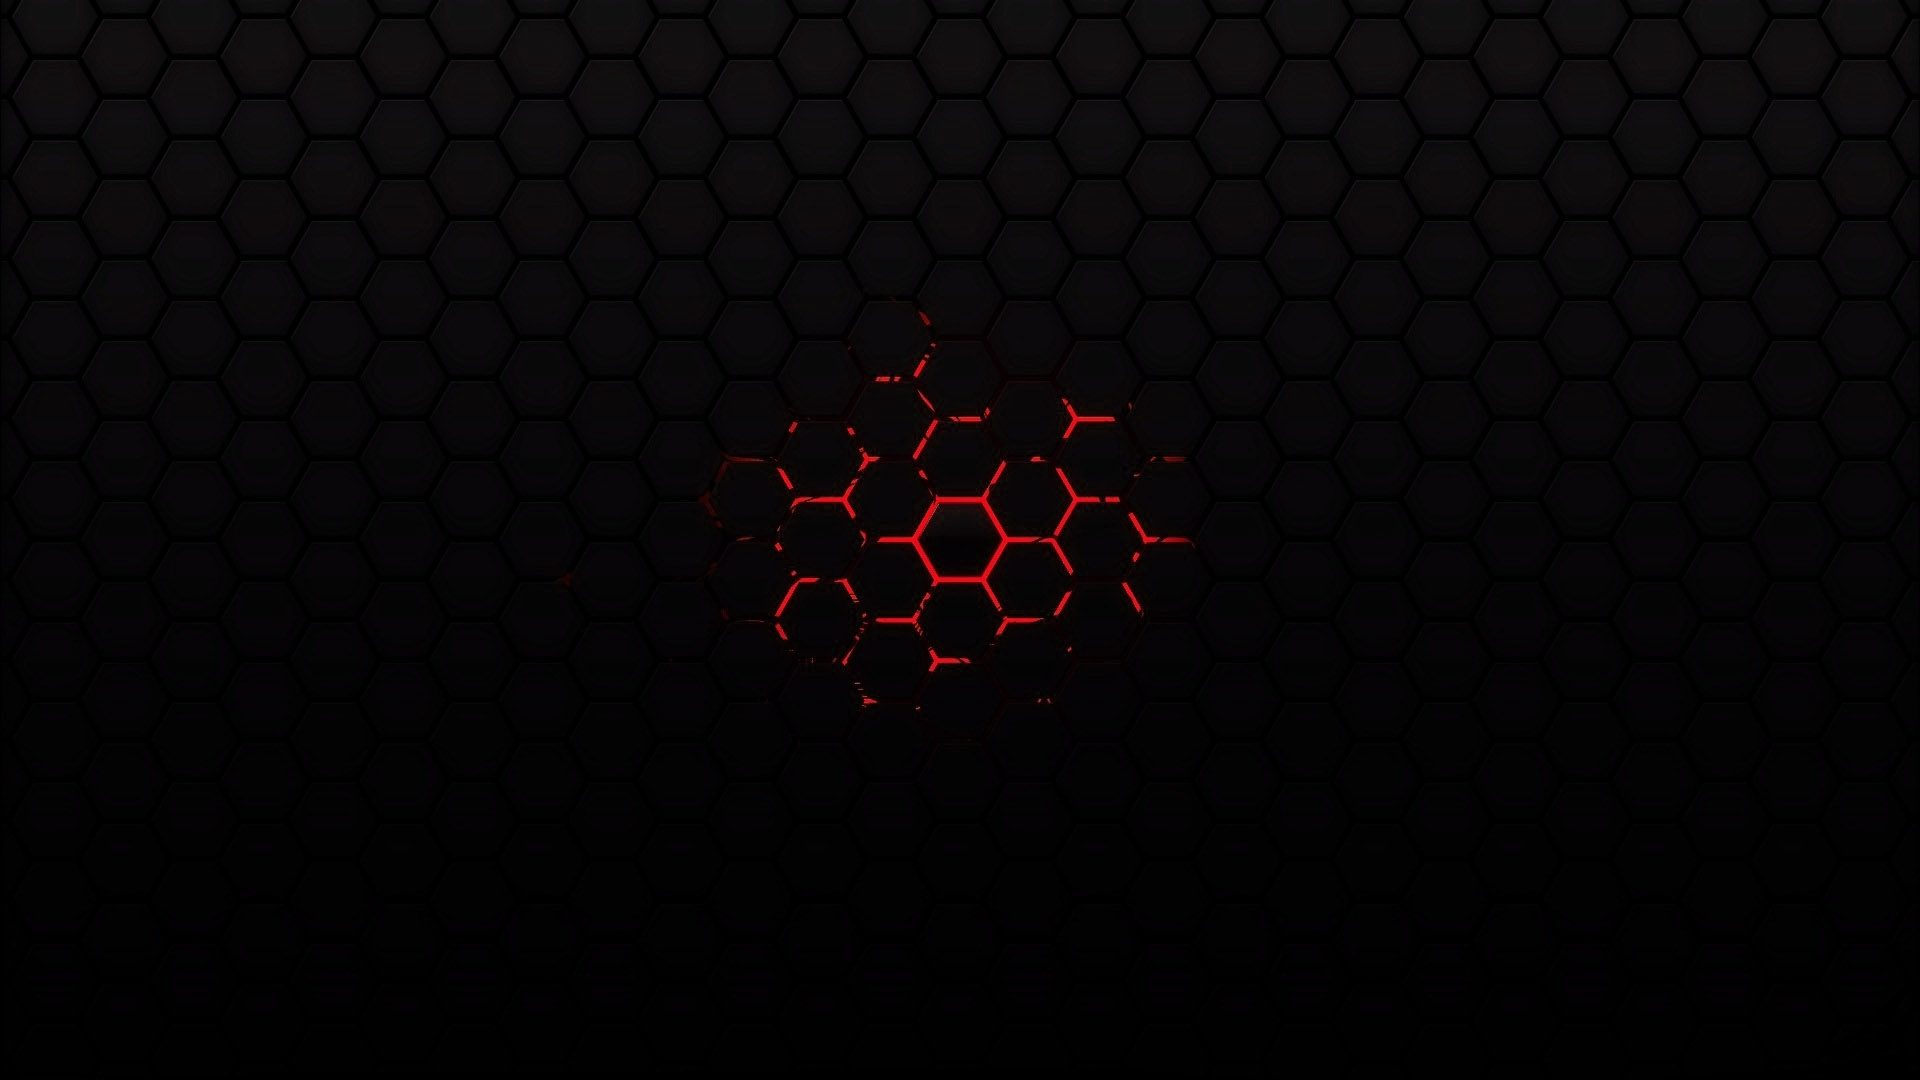 black red black background wallpaper | 1920x1080 | 91924 | wallpaperup